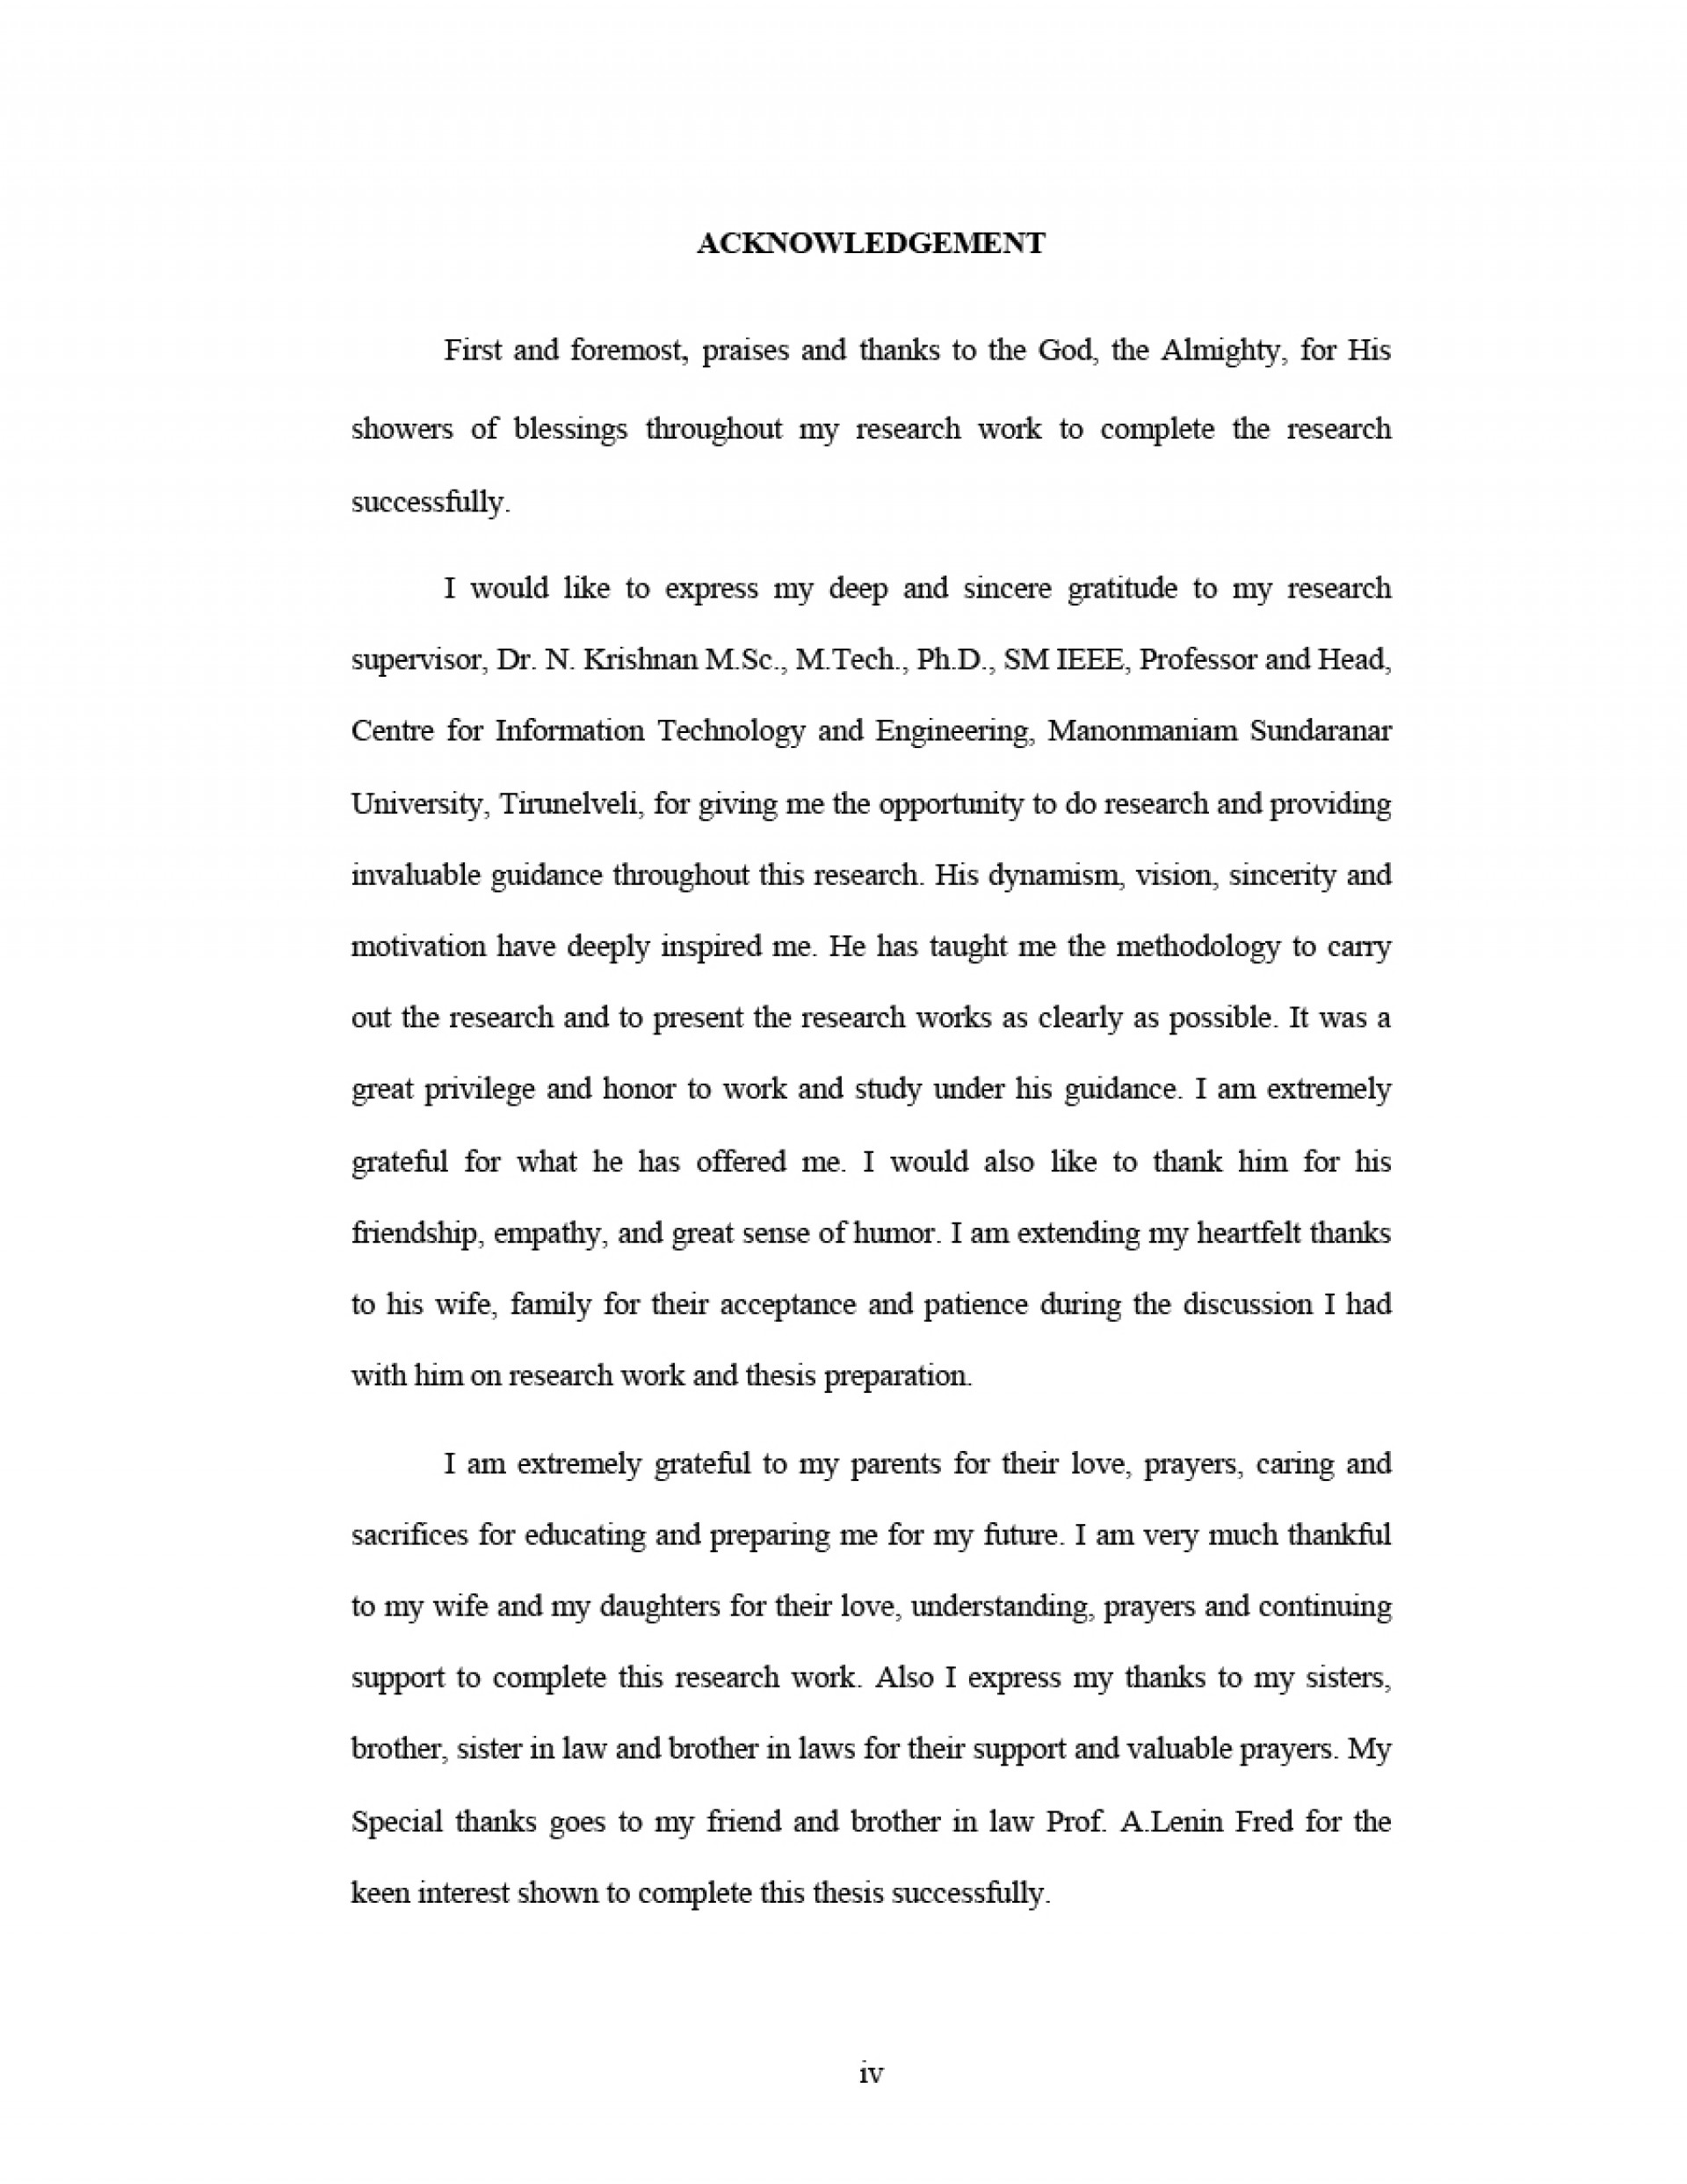 004 Acknowledgement For Research Paper Examples Sample Striking 1920